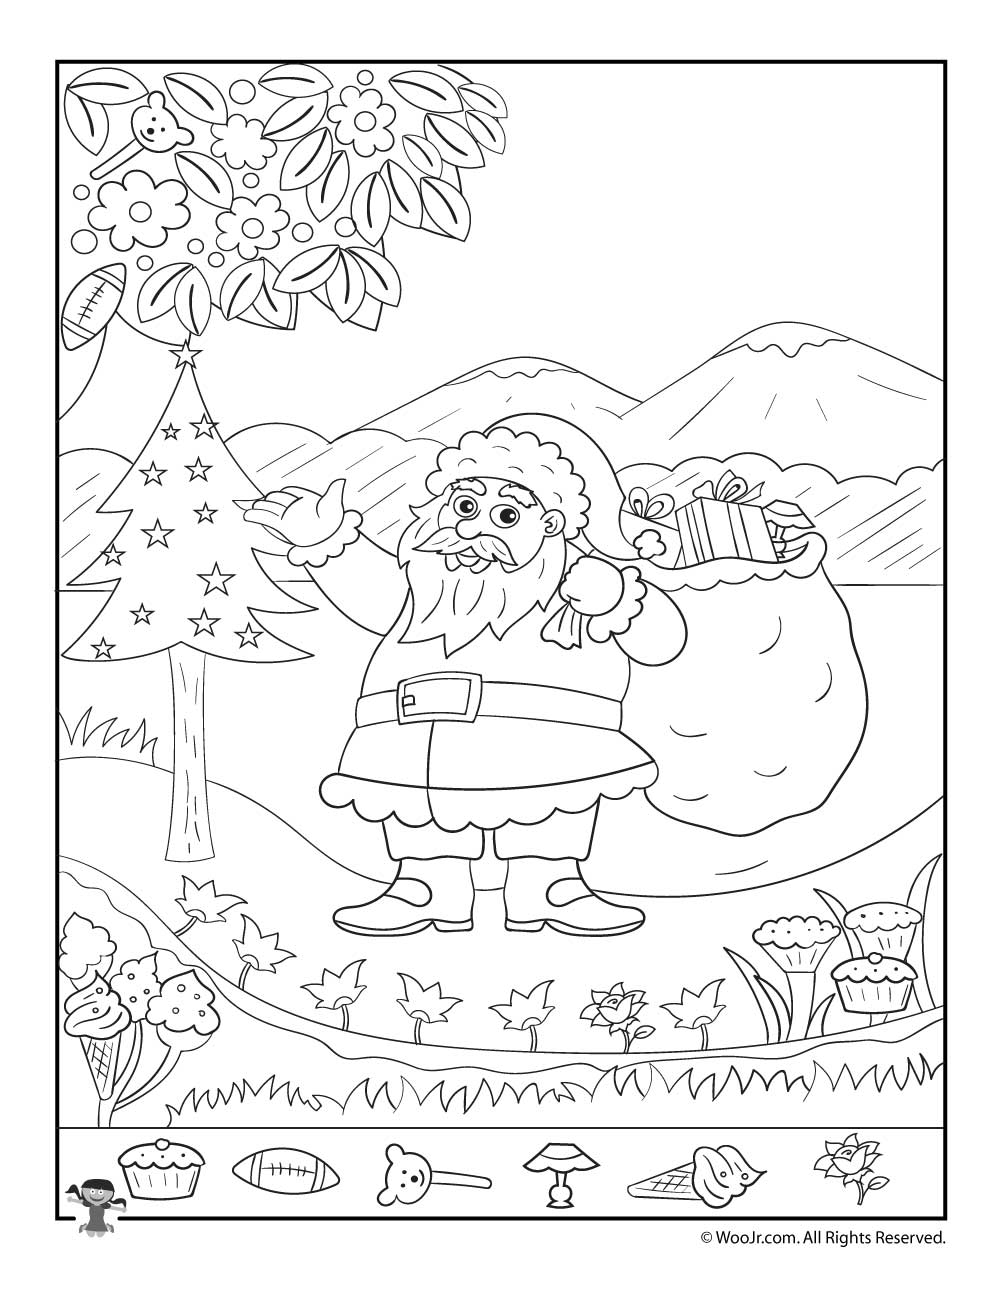 Christmas Hidden Pictures Printables For Kids | Woo! Jr